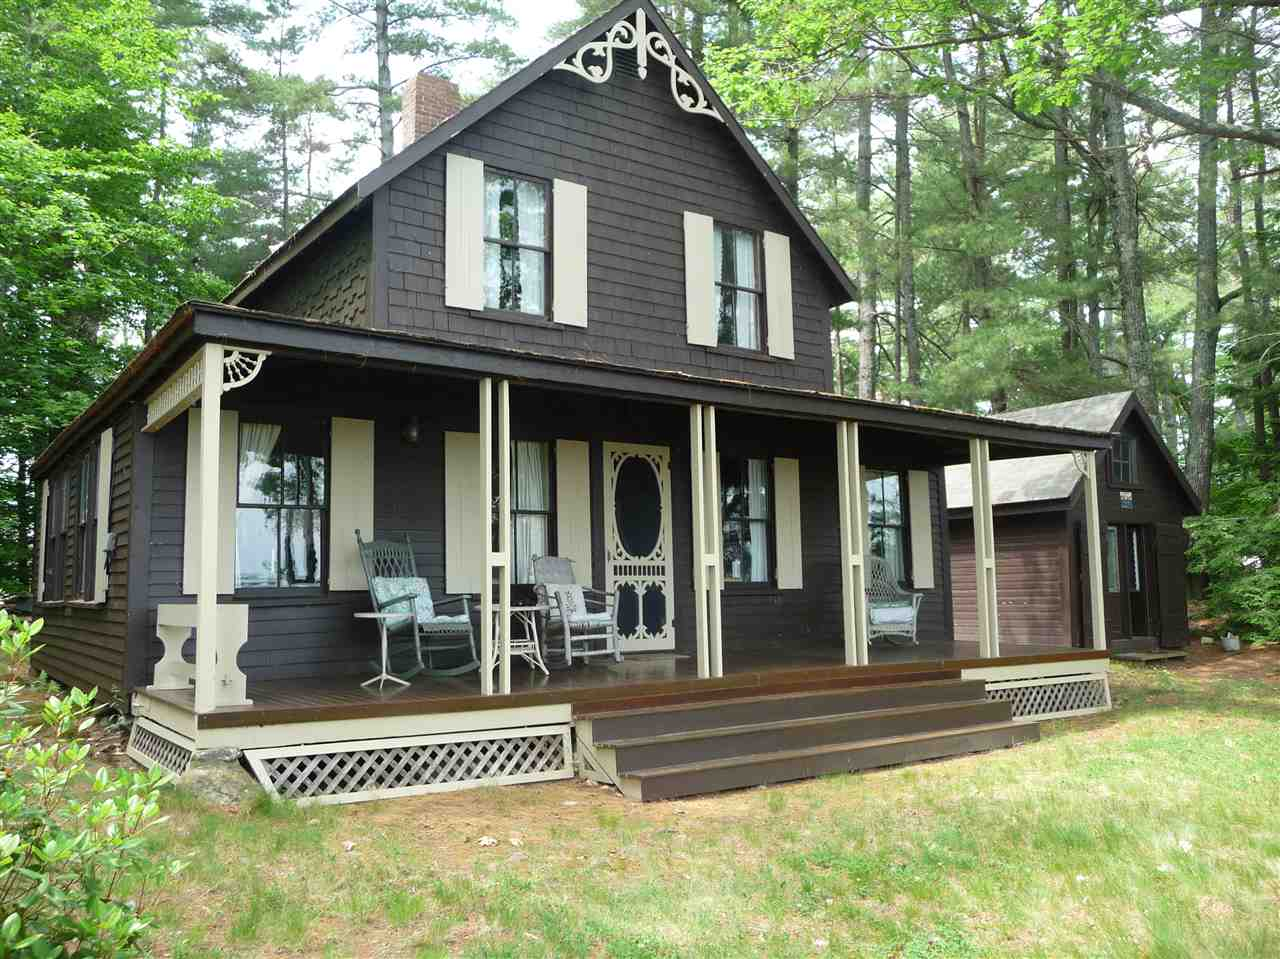 MLS 4761722: 6 Keniston Island, Wolfeboro NH